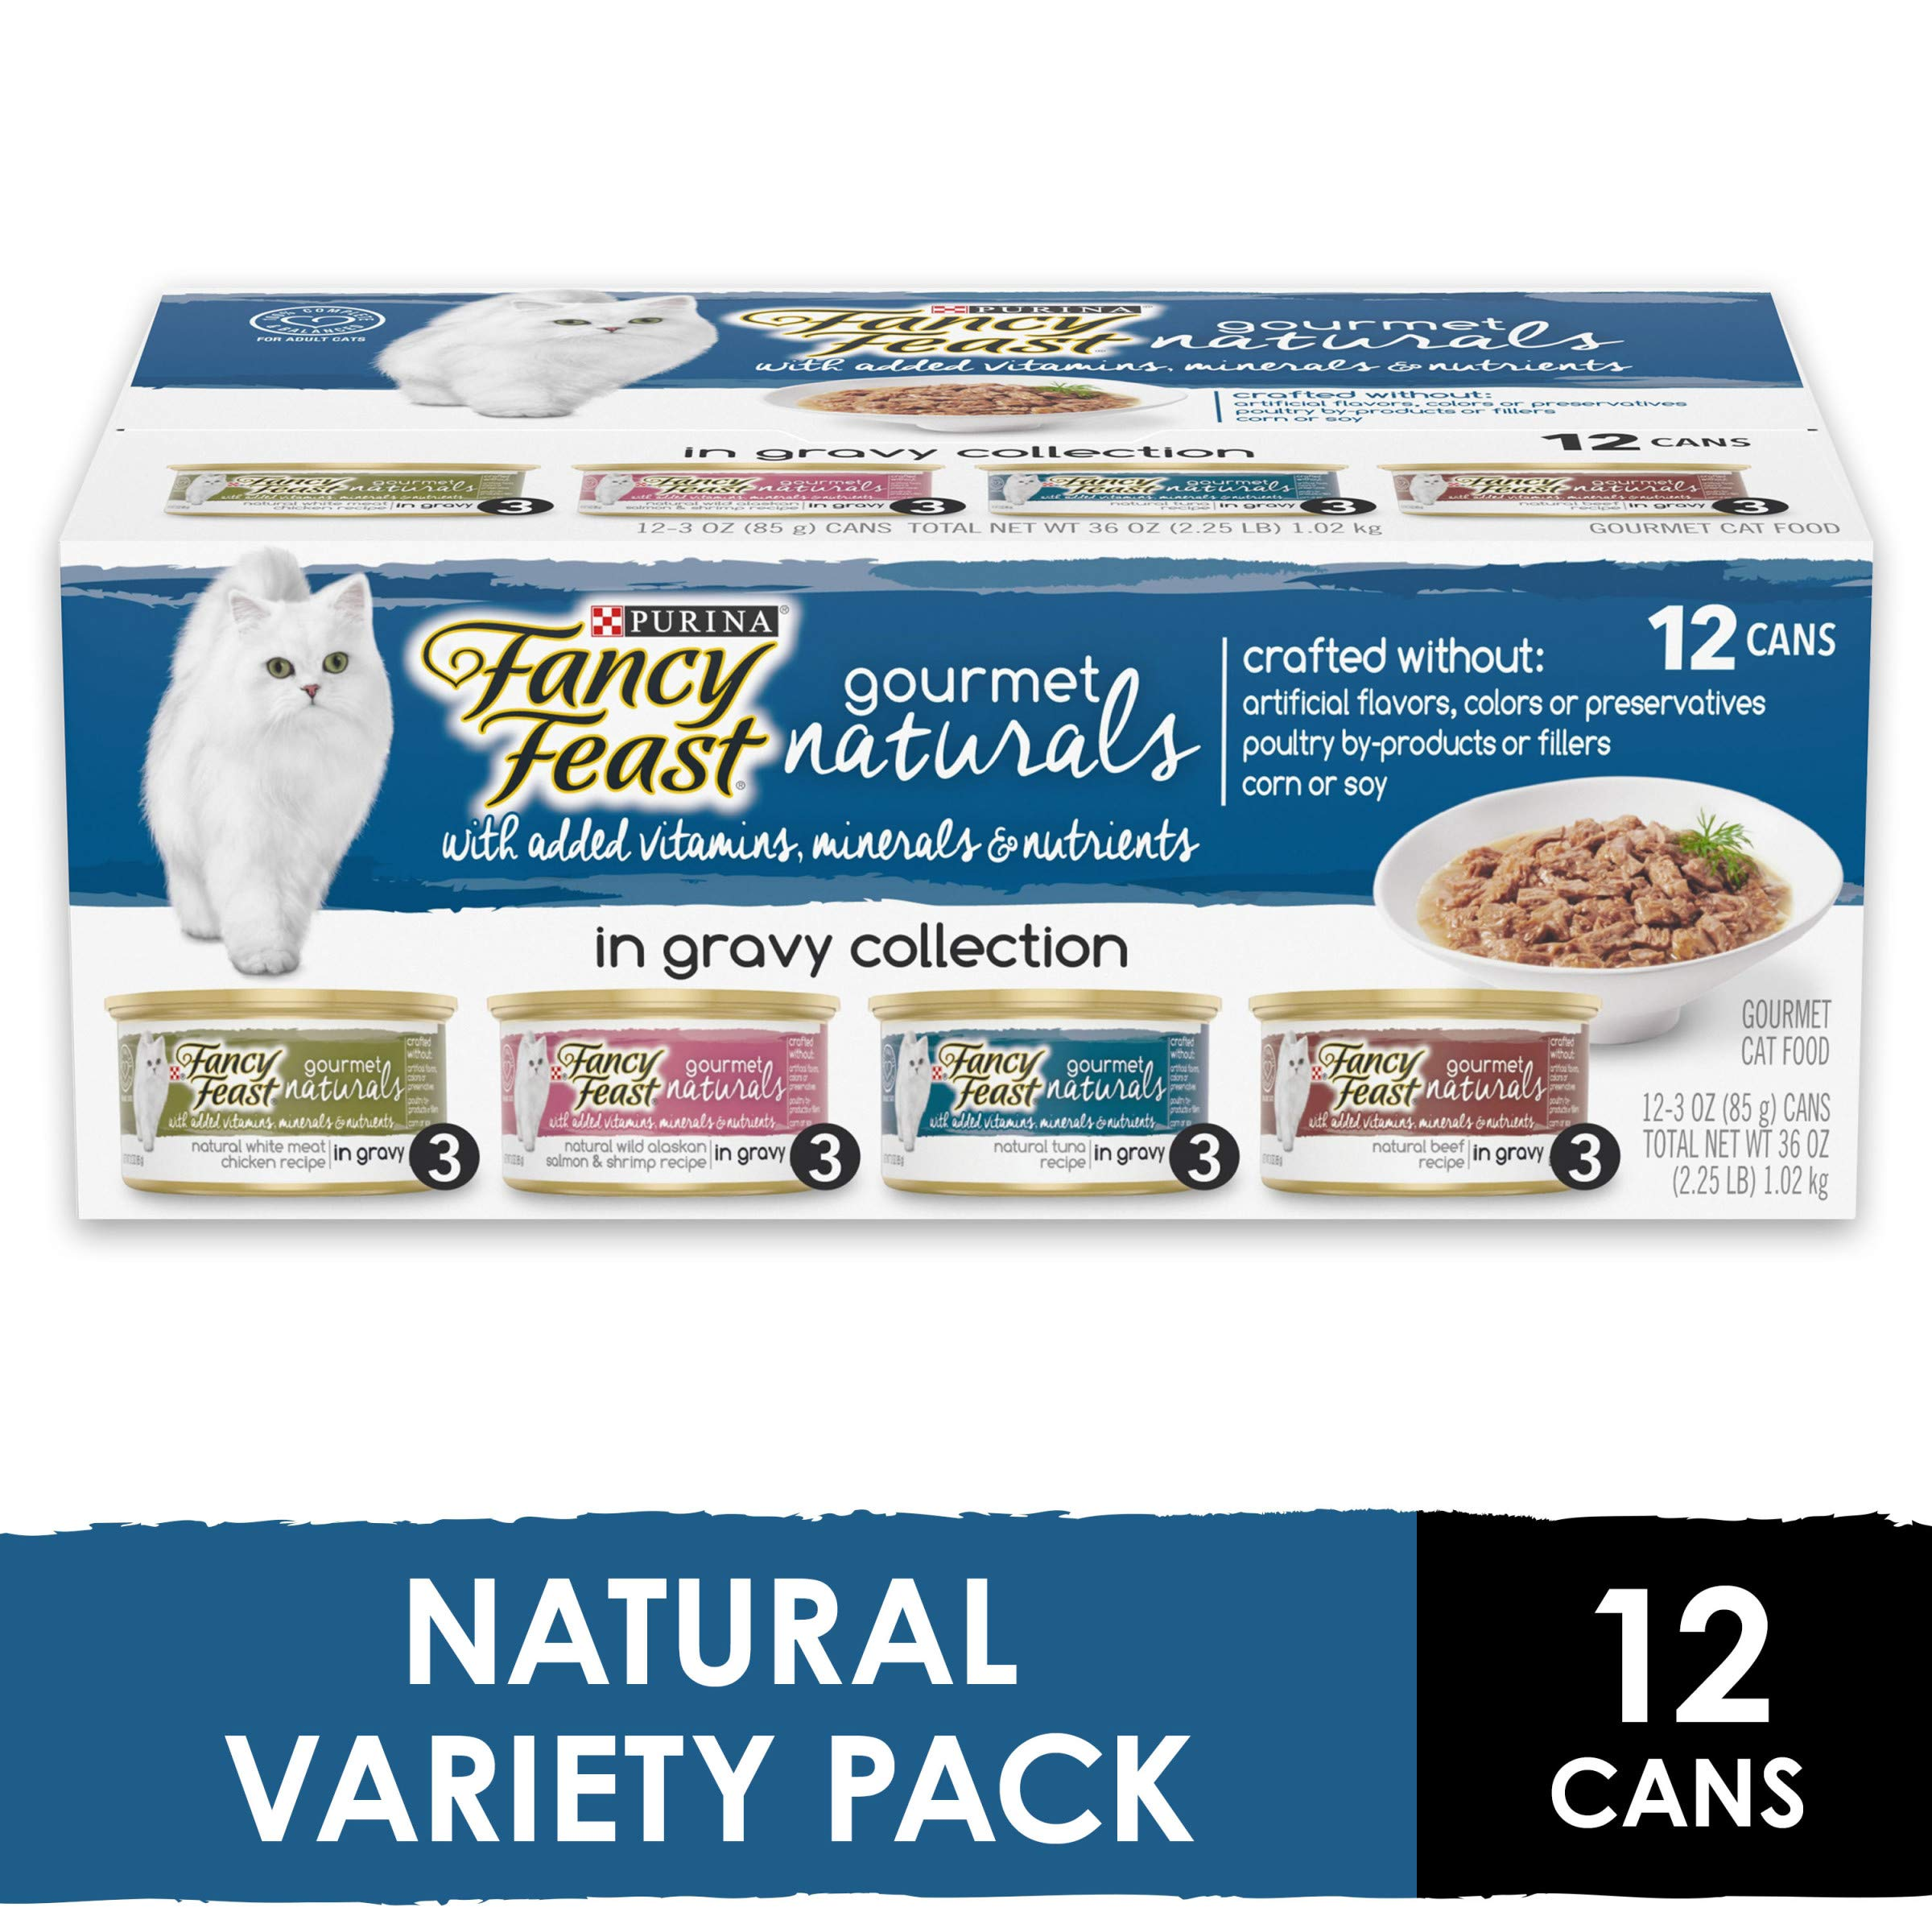 Purina Fancy Feast Natural Gravy Wet Cat Food Variety Pack, Gourmet Naturals in Gravy Collection - (2 Packs of 12) 3 oz. Cans by Purina Fancy Feast